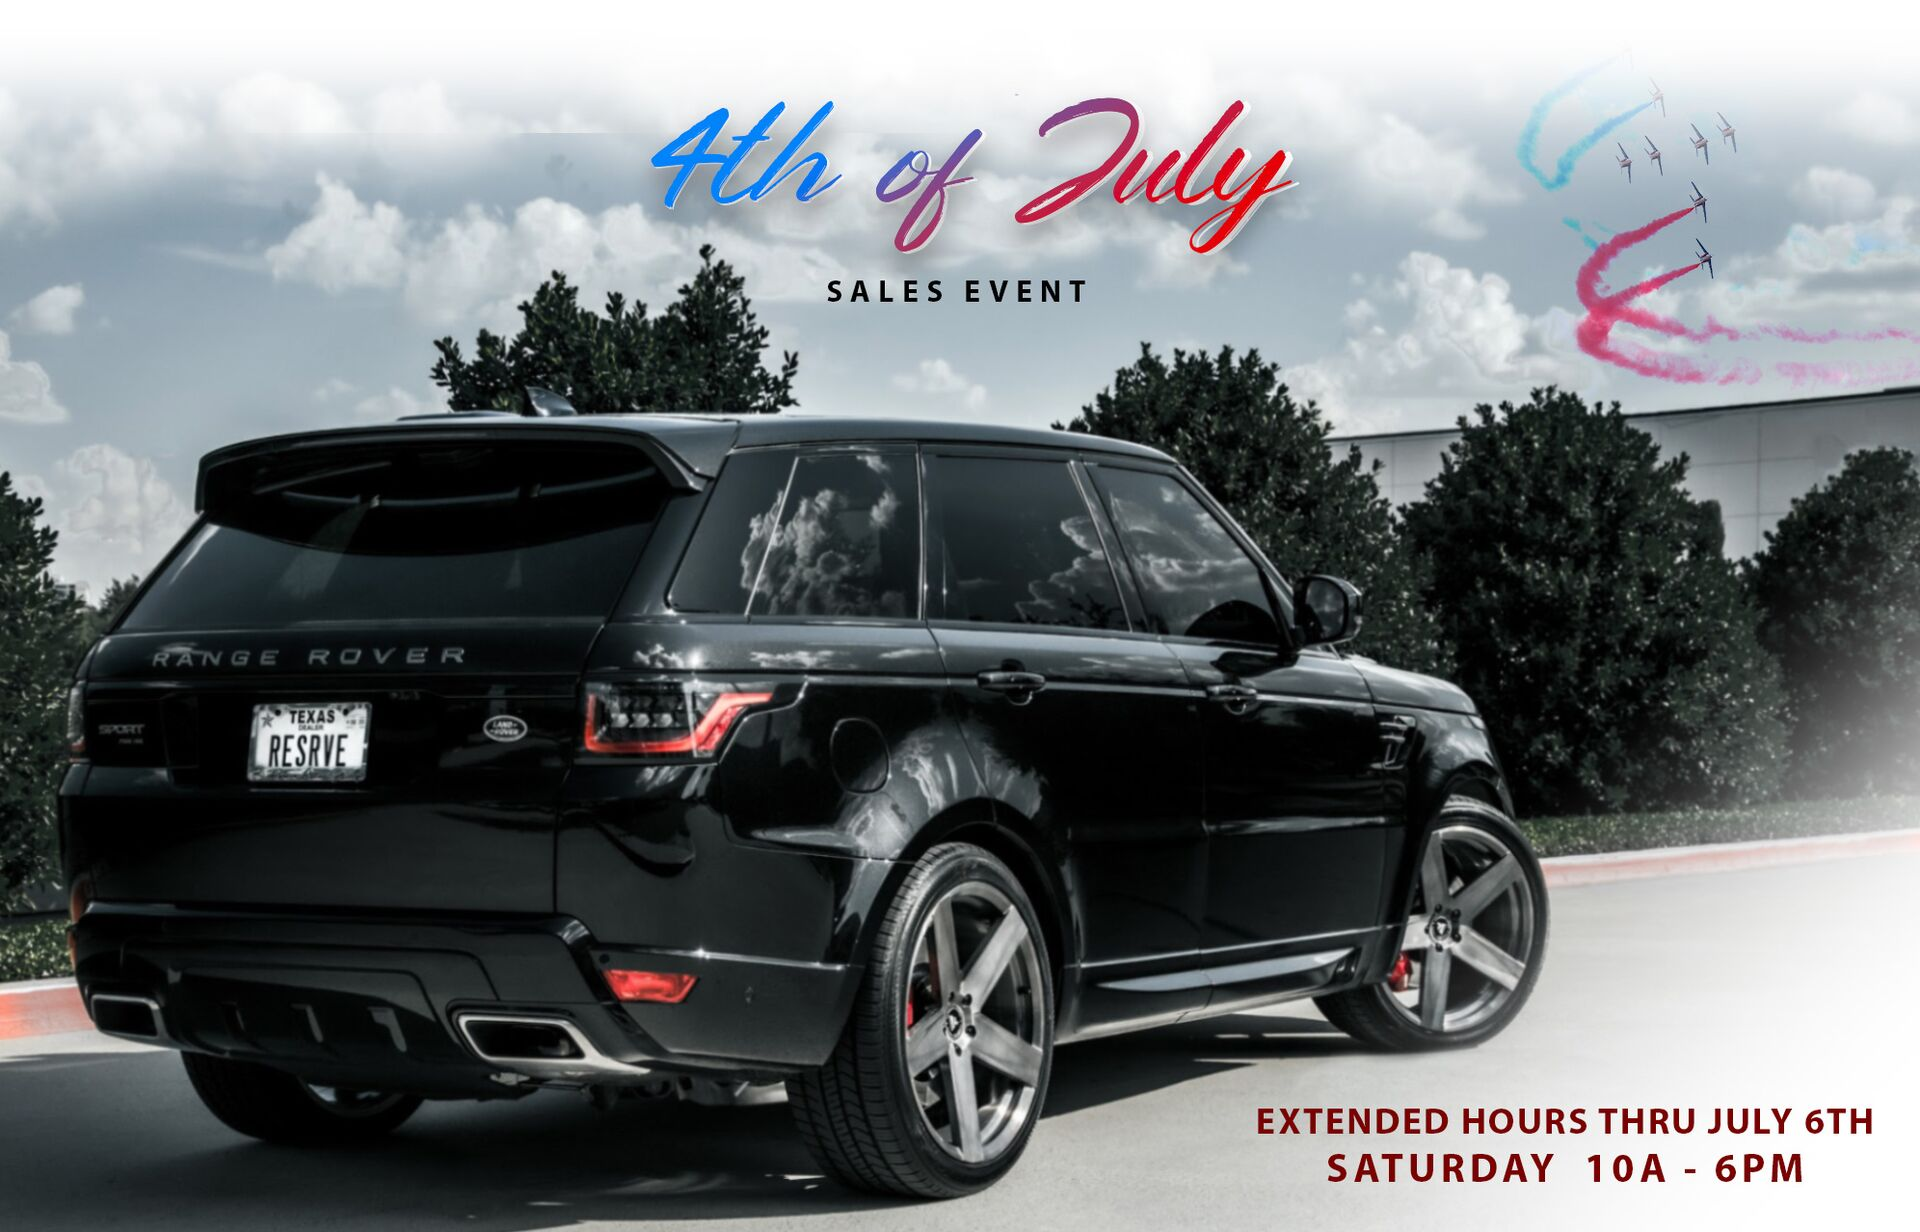 Forth of July Sales Event